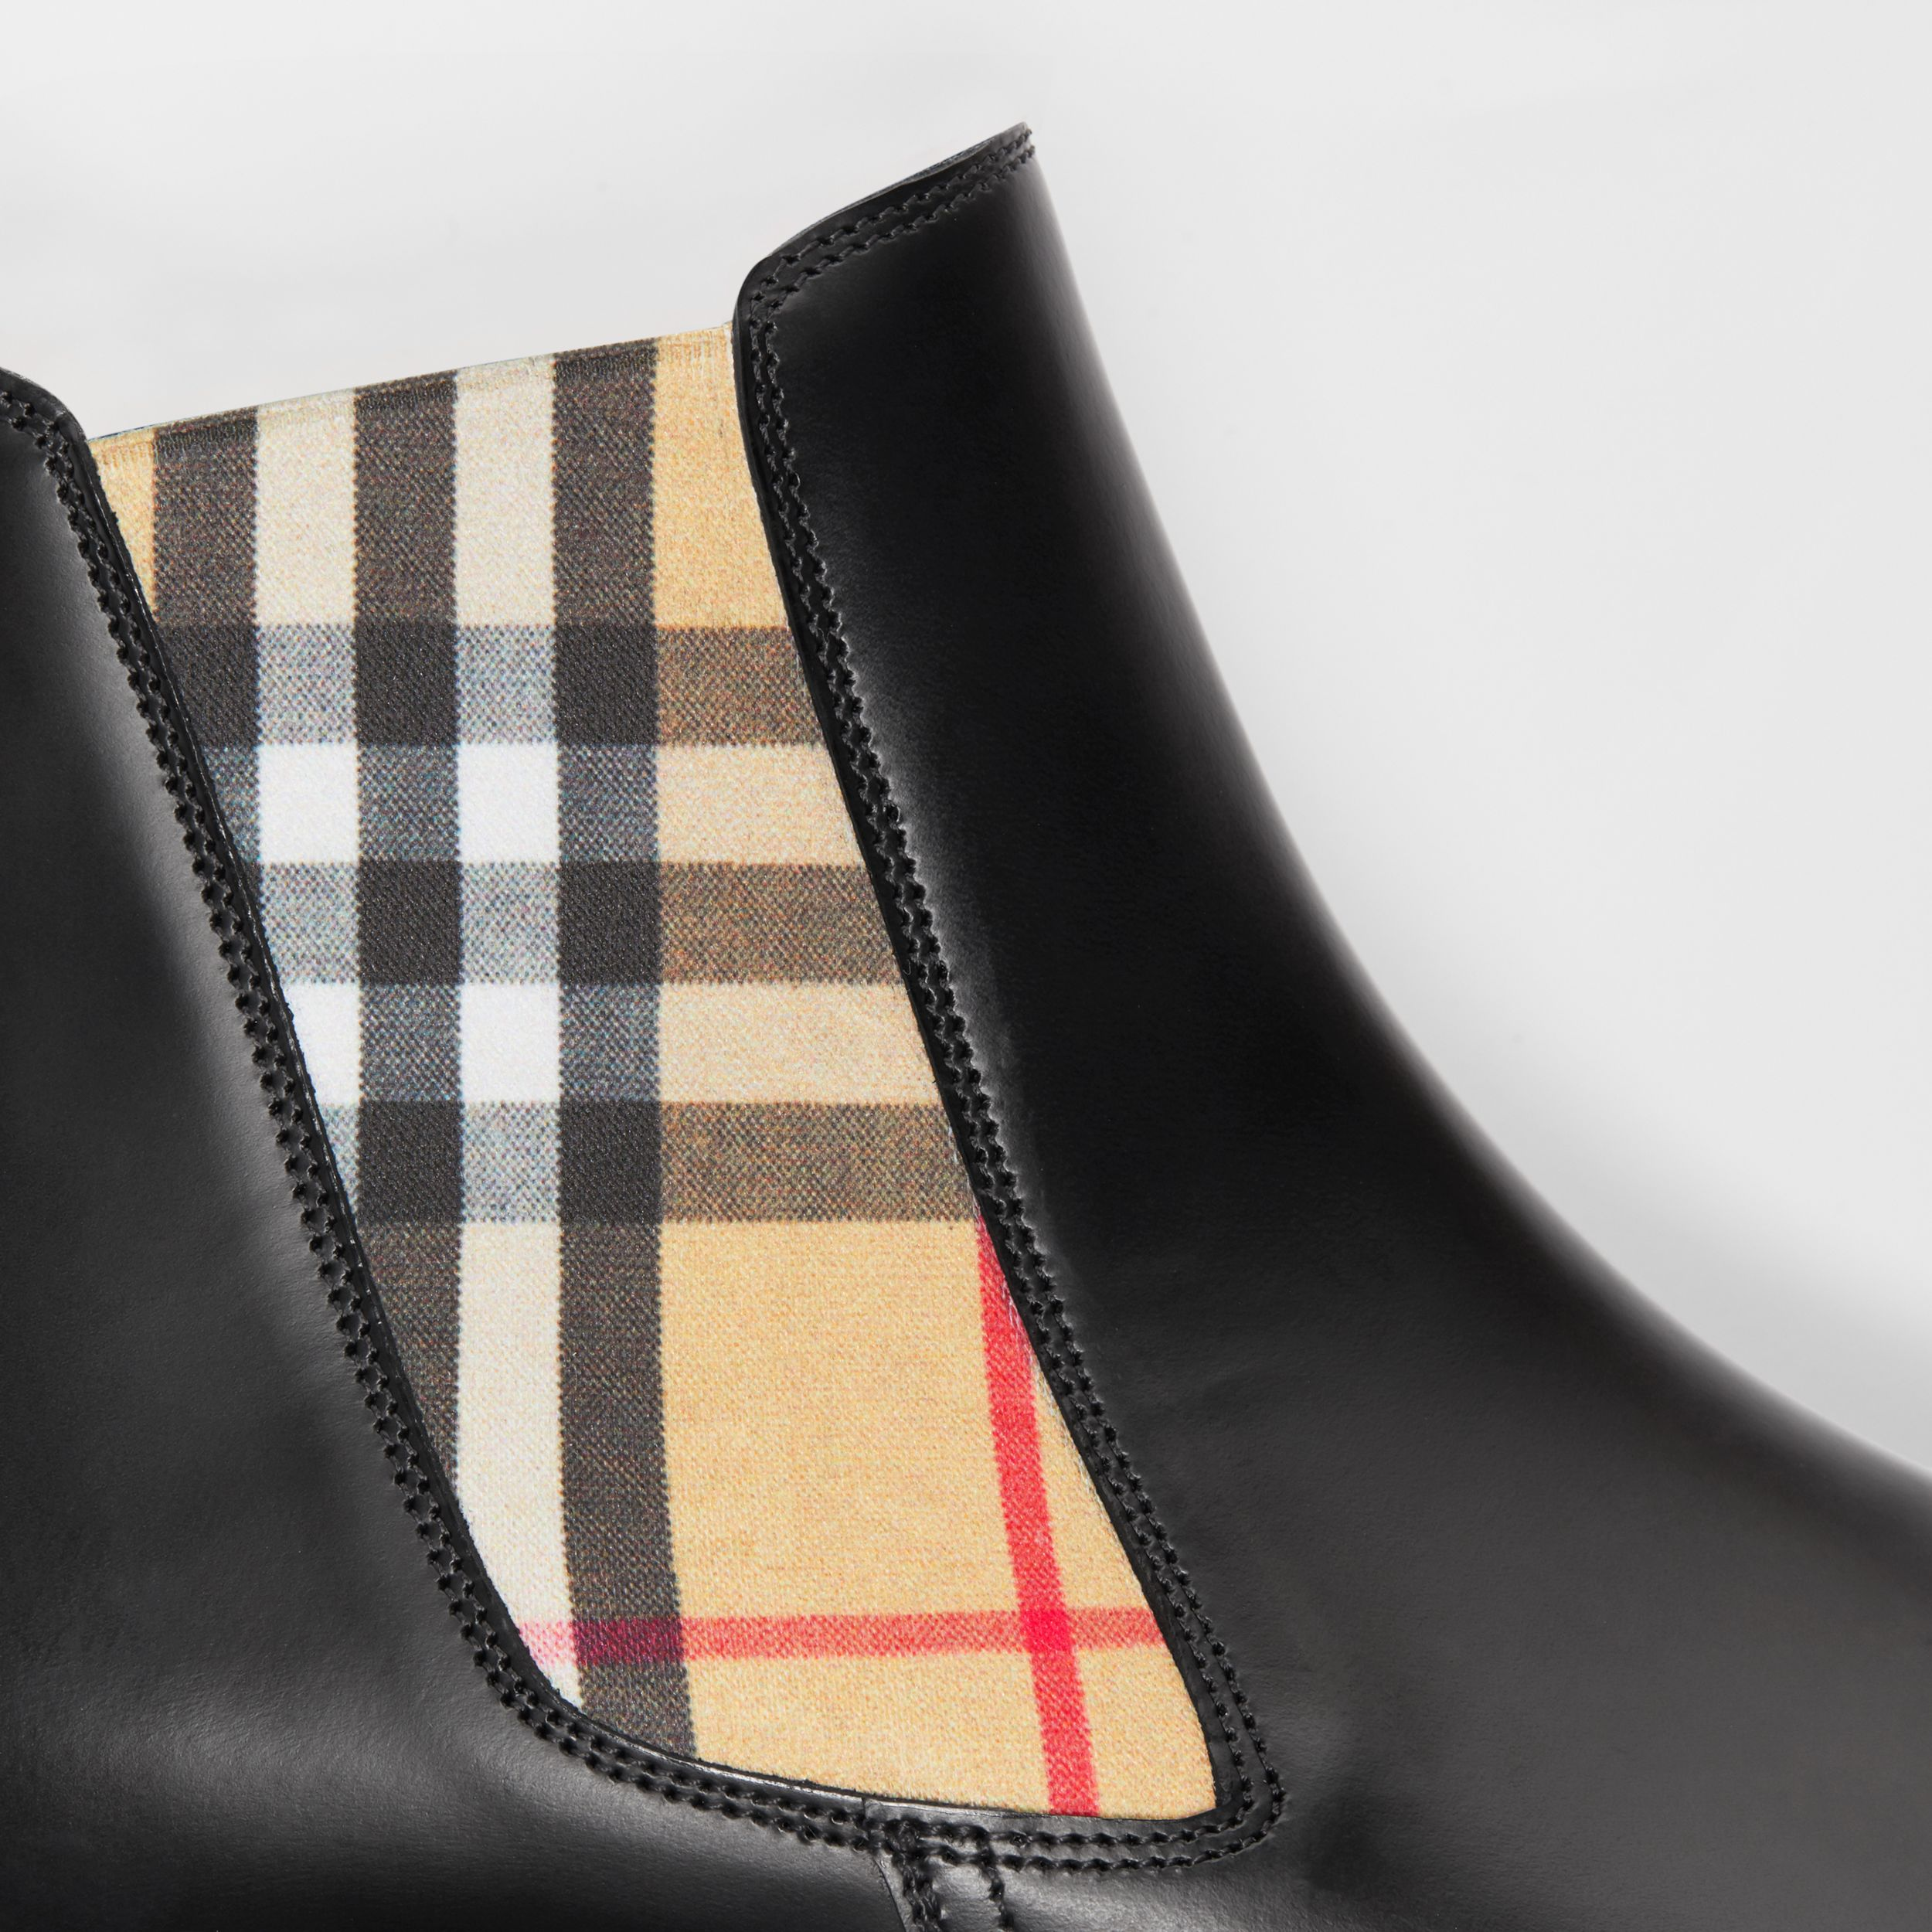 Vintage Check Detail Leather Chelsea Boots in Black - Women | Burberry - 2